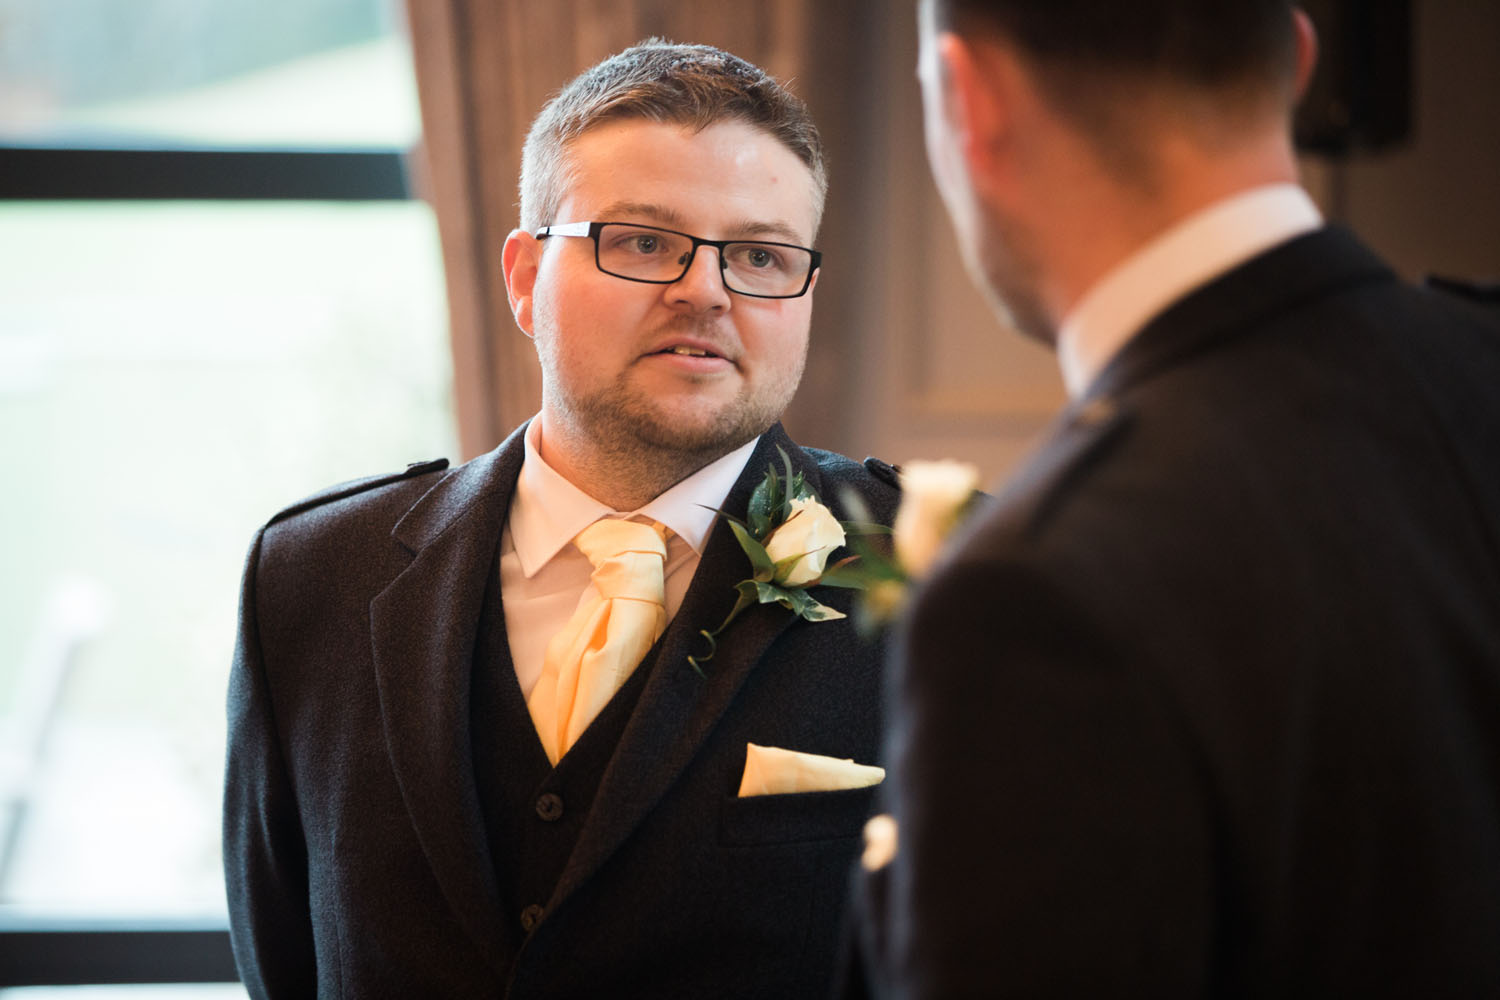 groom waiting - ceremony at devere latimer